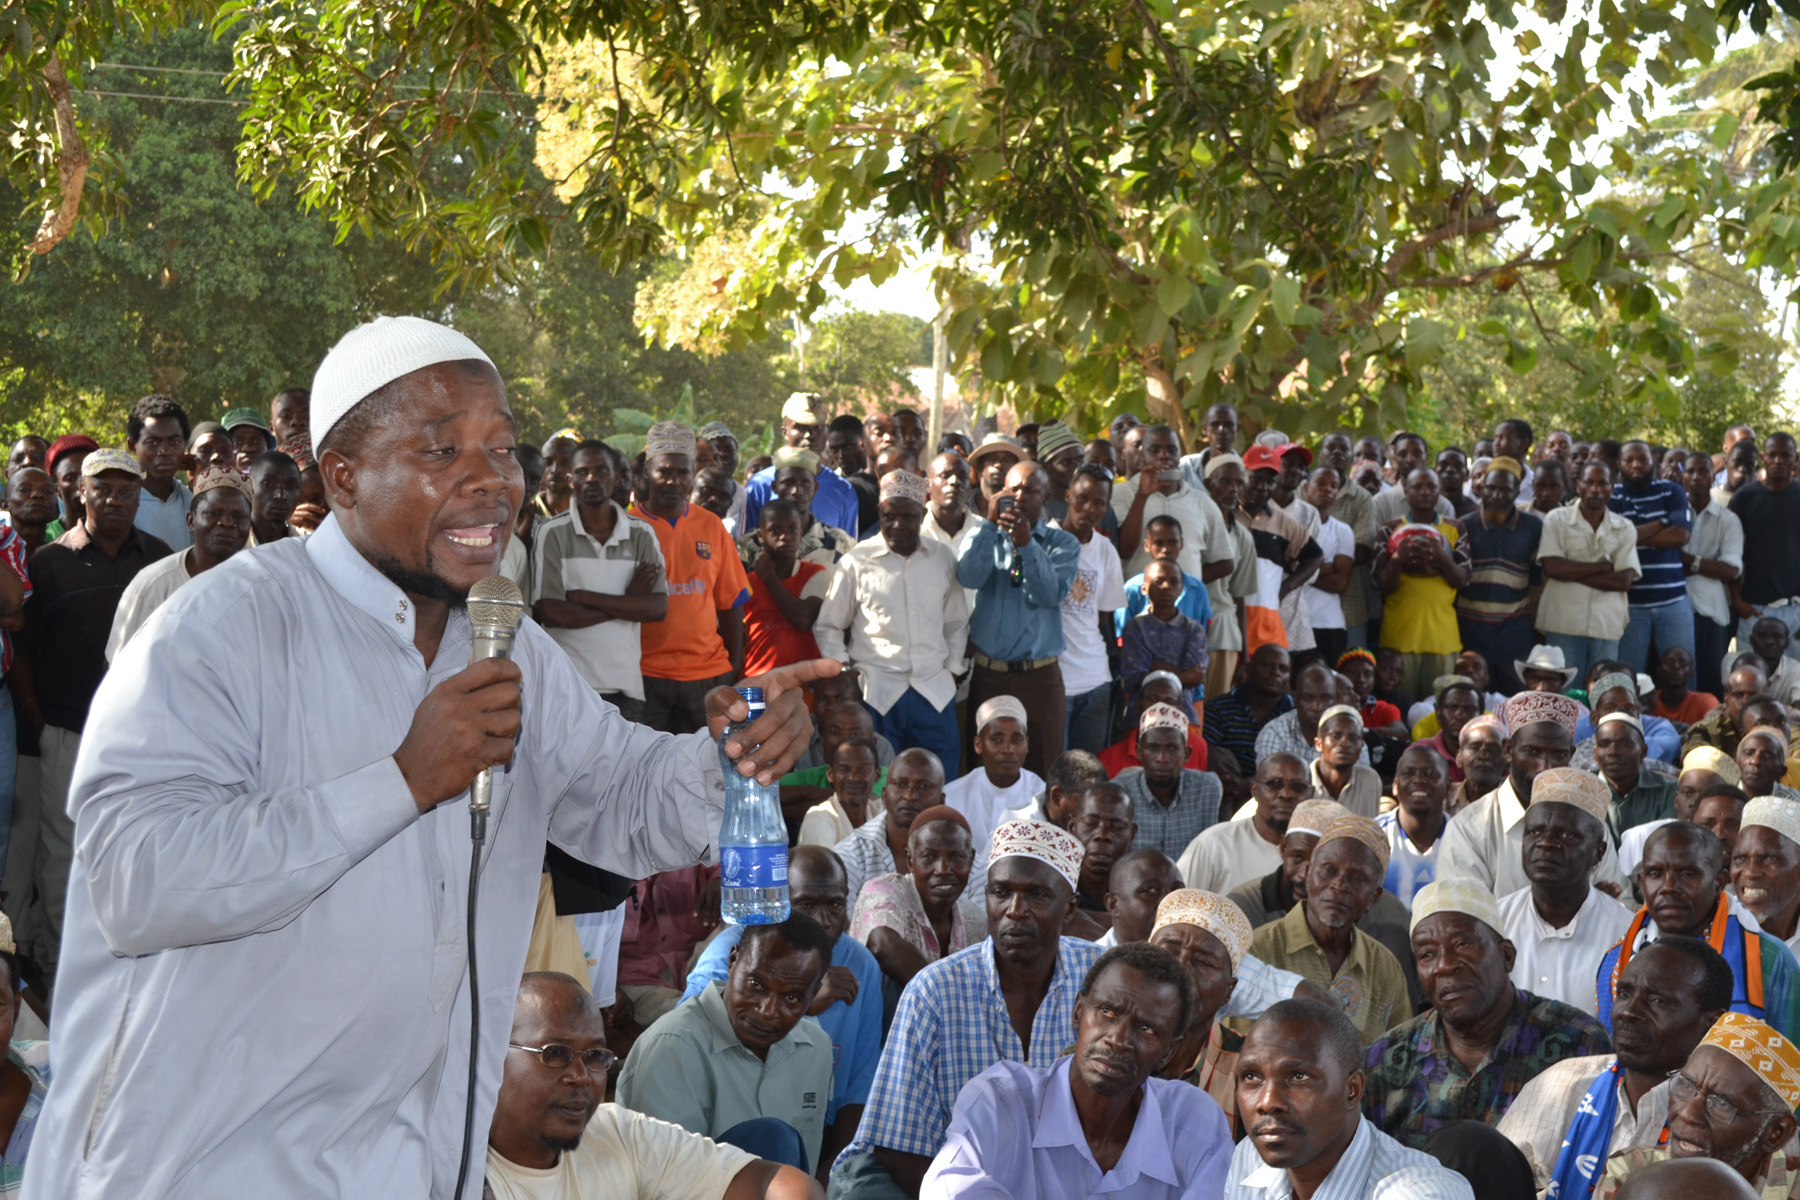 Mombasa Republican Council Spokesperson Rashid Mraja addresses members of the group